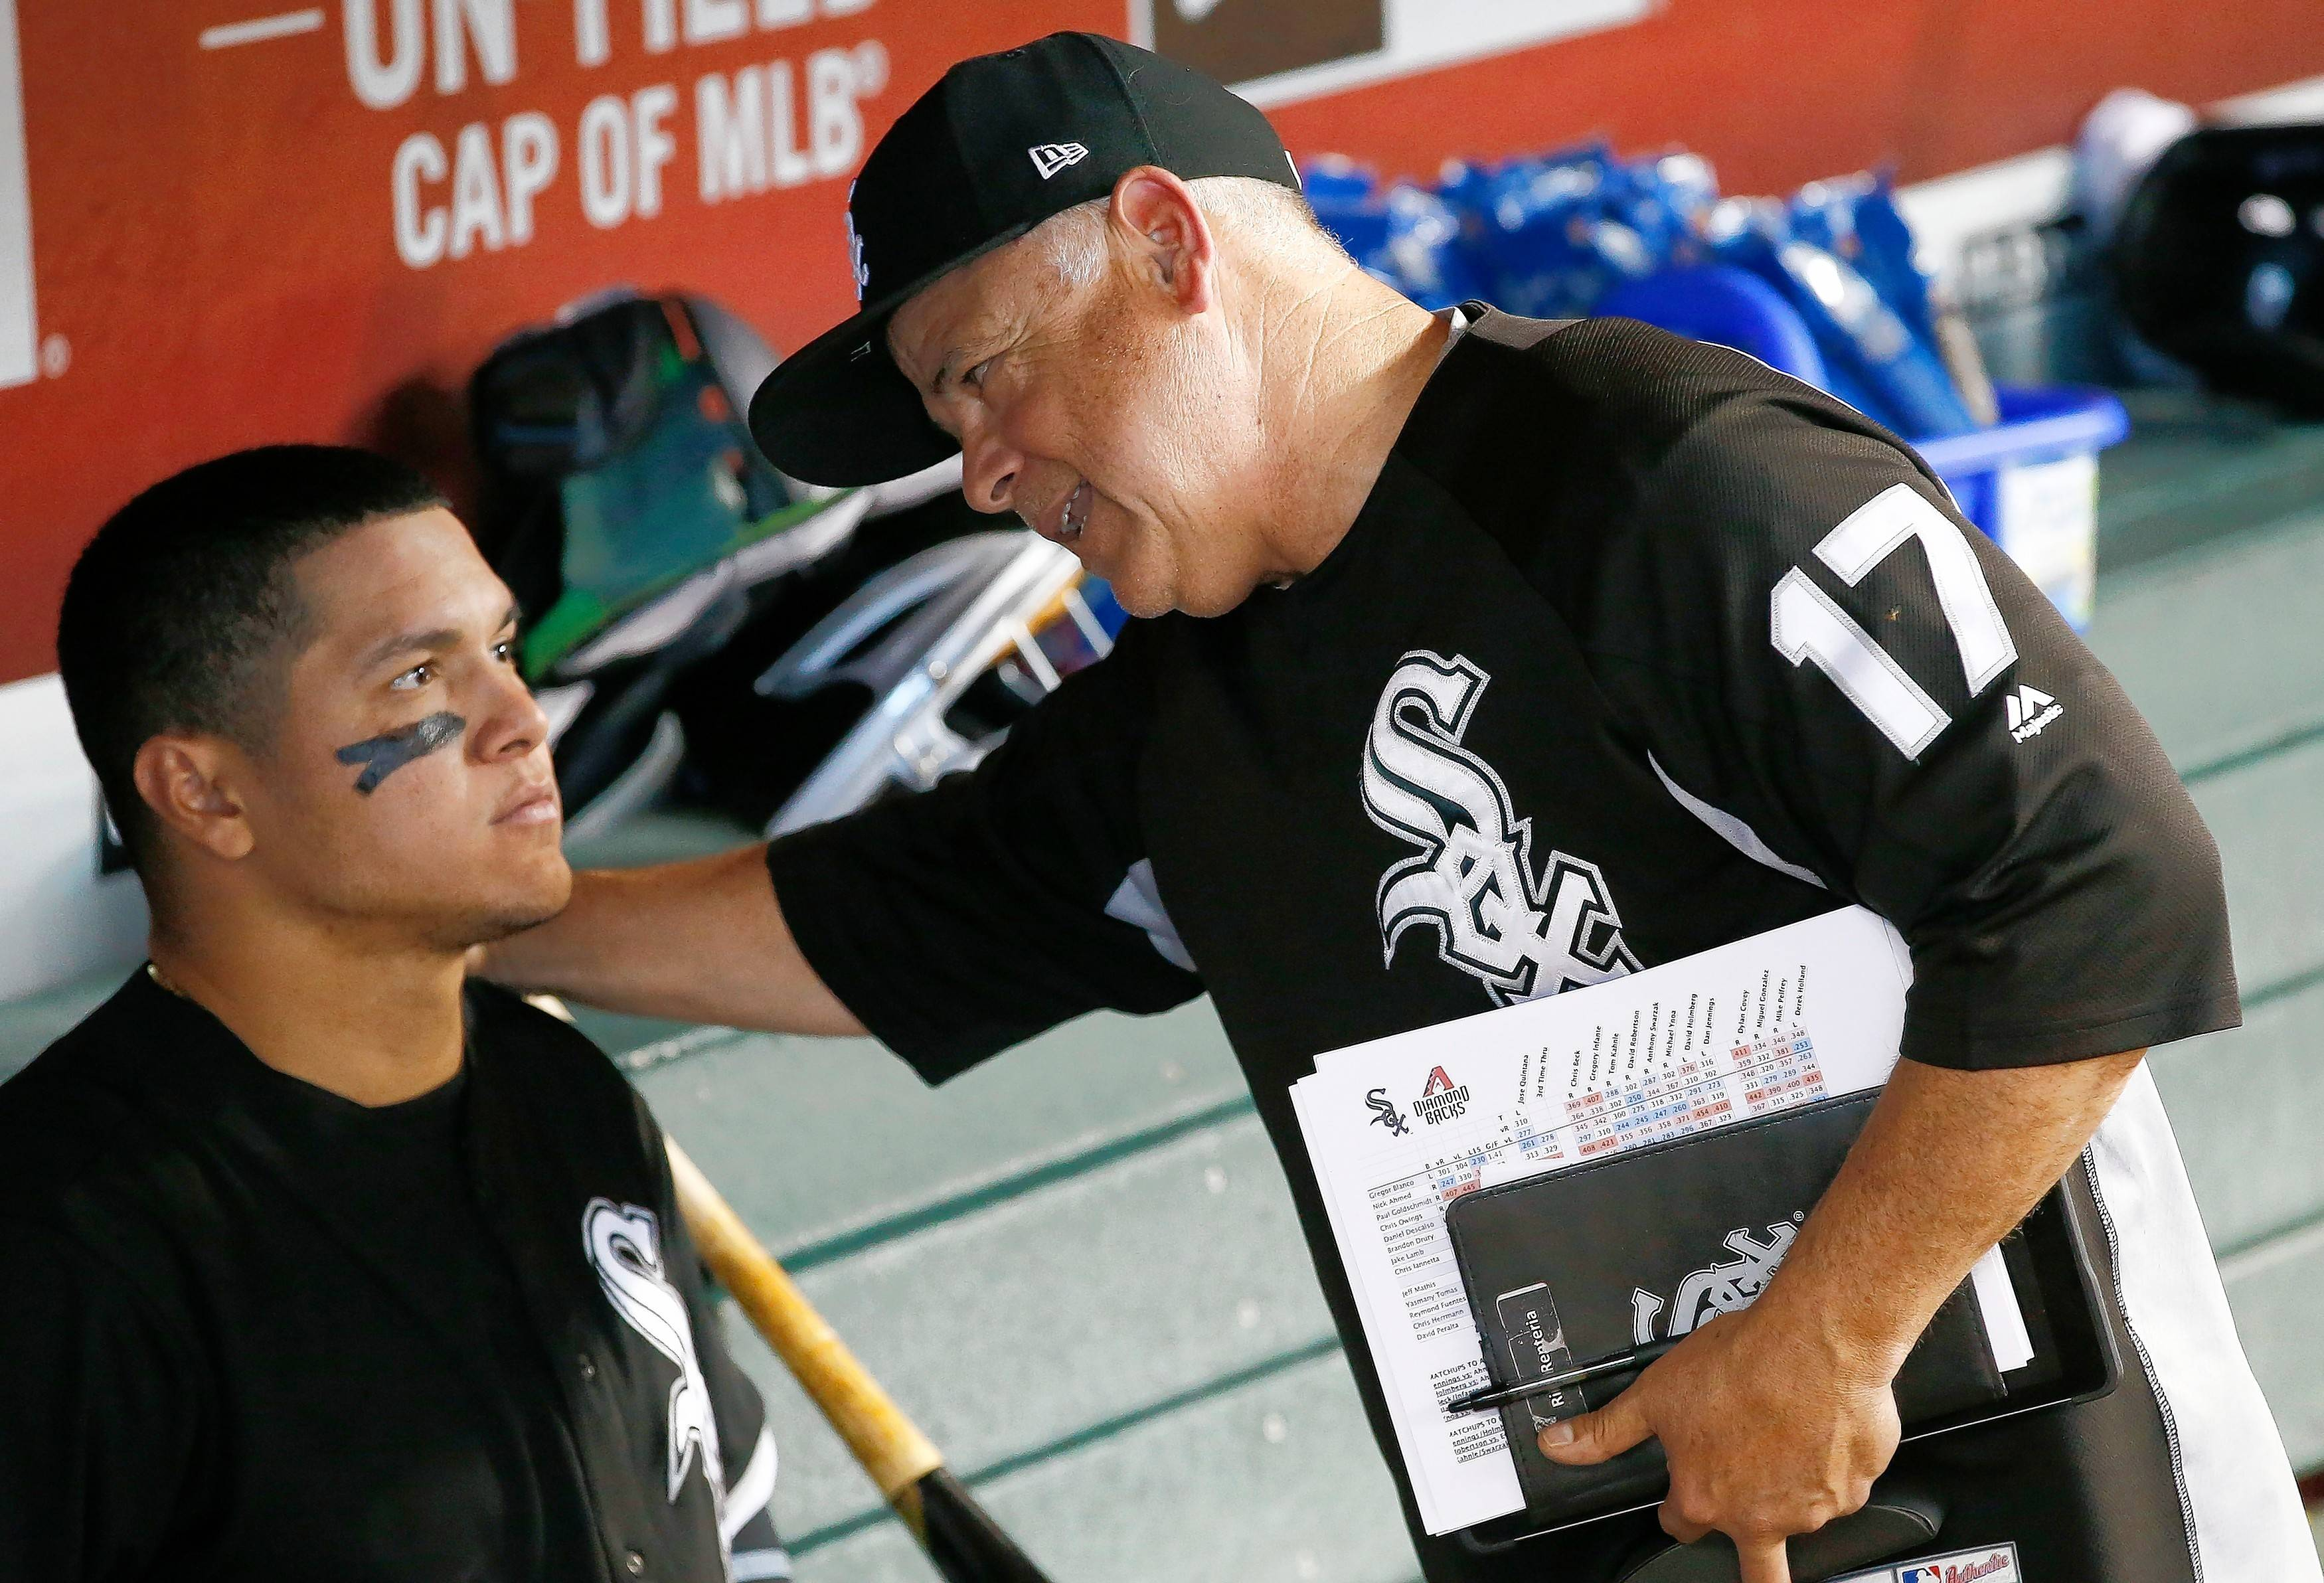 Chicago White Sox manager Rick Renteria (17) talks with Avisail Garcia, left, in the dugout after a baseball game against the Arizona Diamondbacks Wednesday, May 24, 2017, in Phoenix. The Diamondbacks defeated the White Sox 8-6.